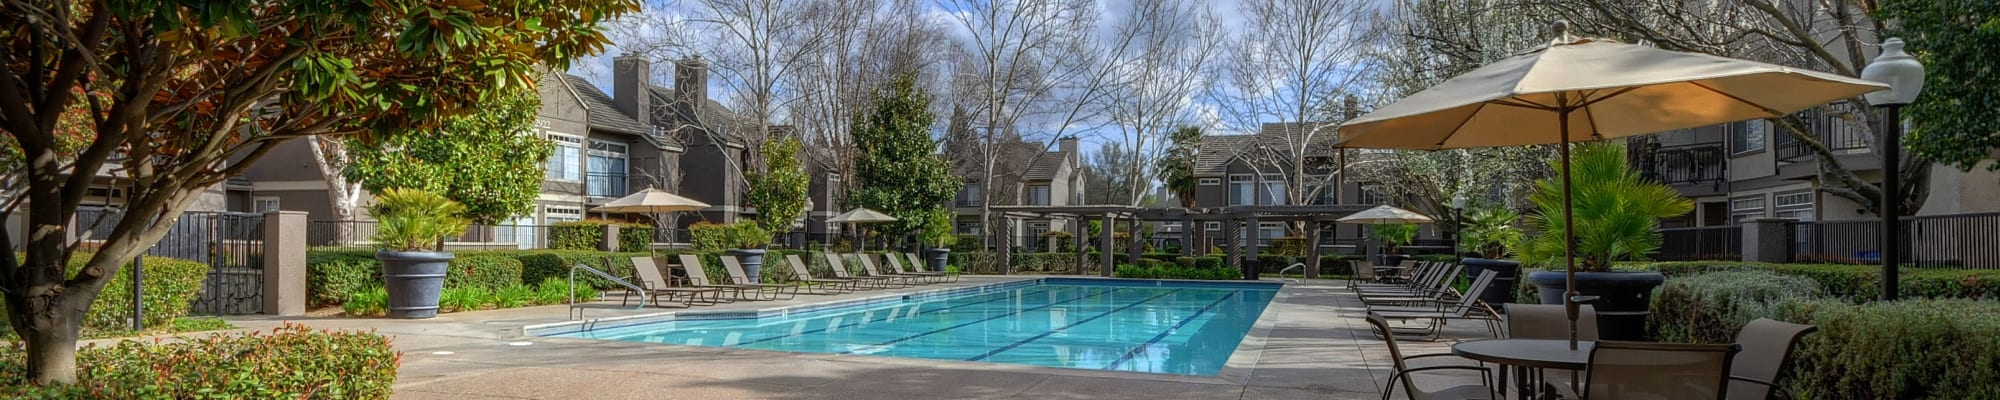 Contact us at Larkspur Woods in Sacramento, California